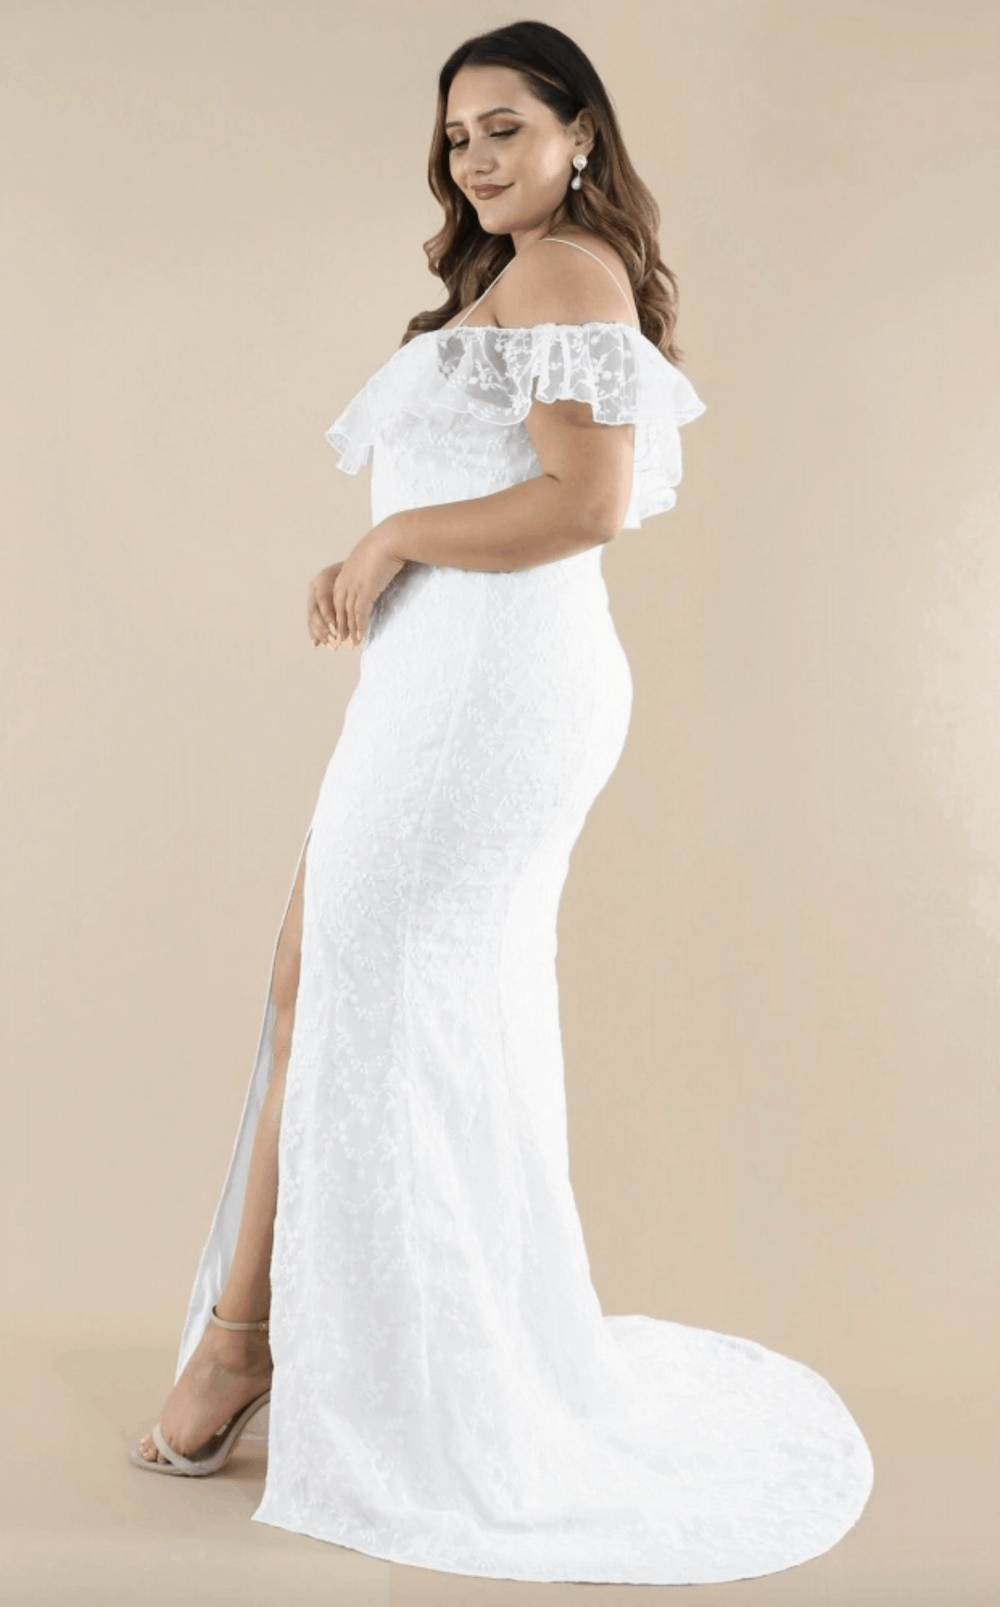 Plus Size Bridal Gowns and Wedding Dresses Perfect for Curvy Brides Off Shoulder Lace